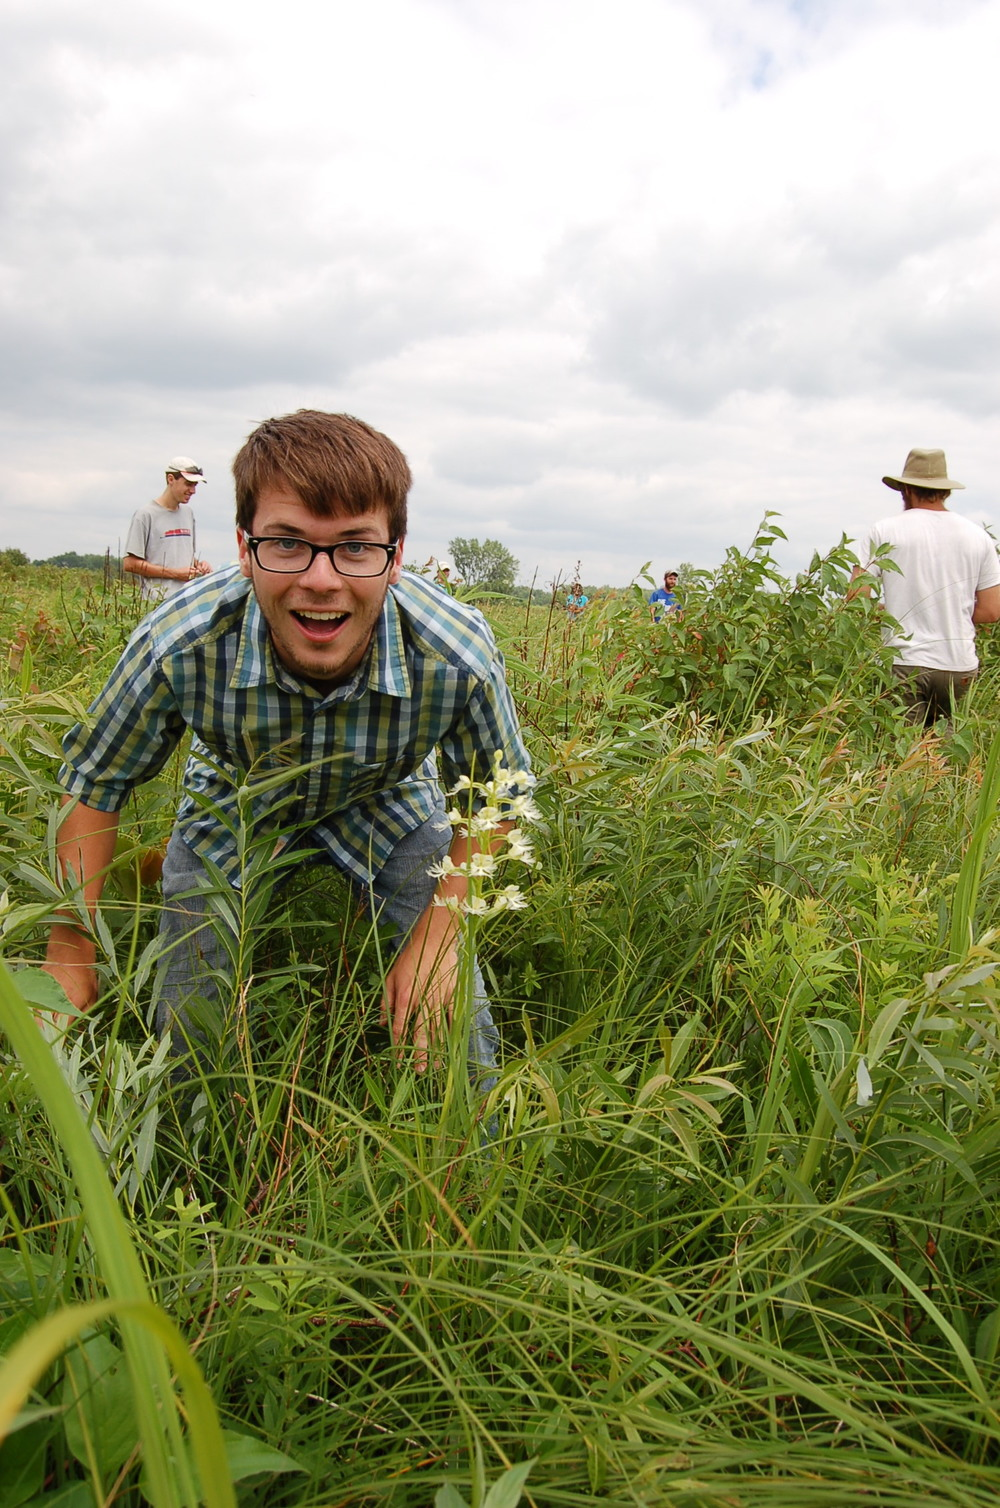 We partner with the UW Arboretum to manage Faville Prairie, where the state endangered eastern white-fringed prairie orchid has a robust population